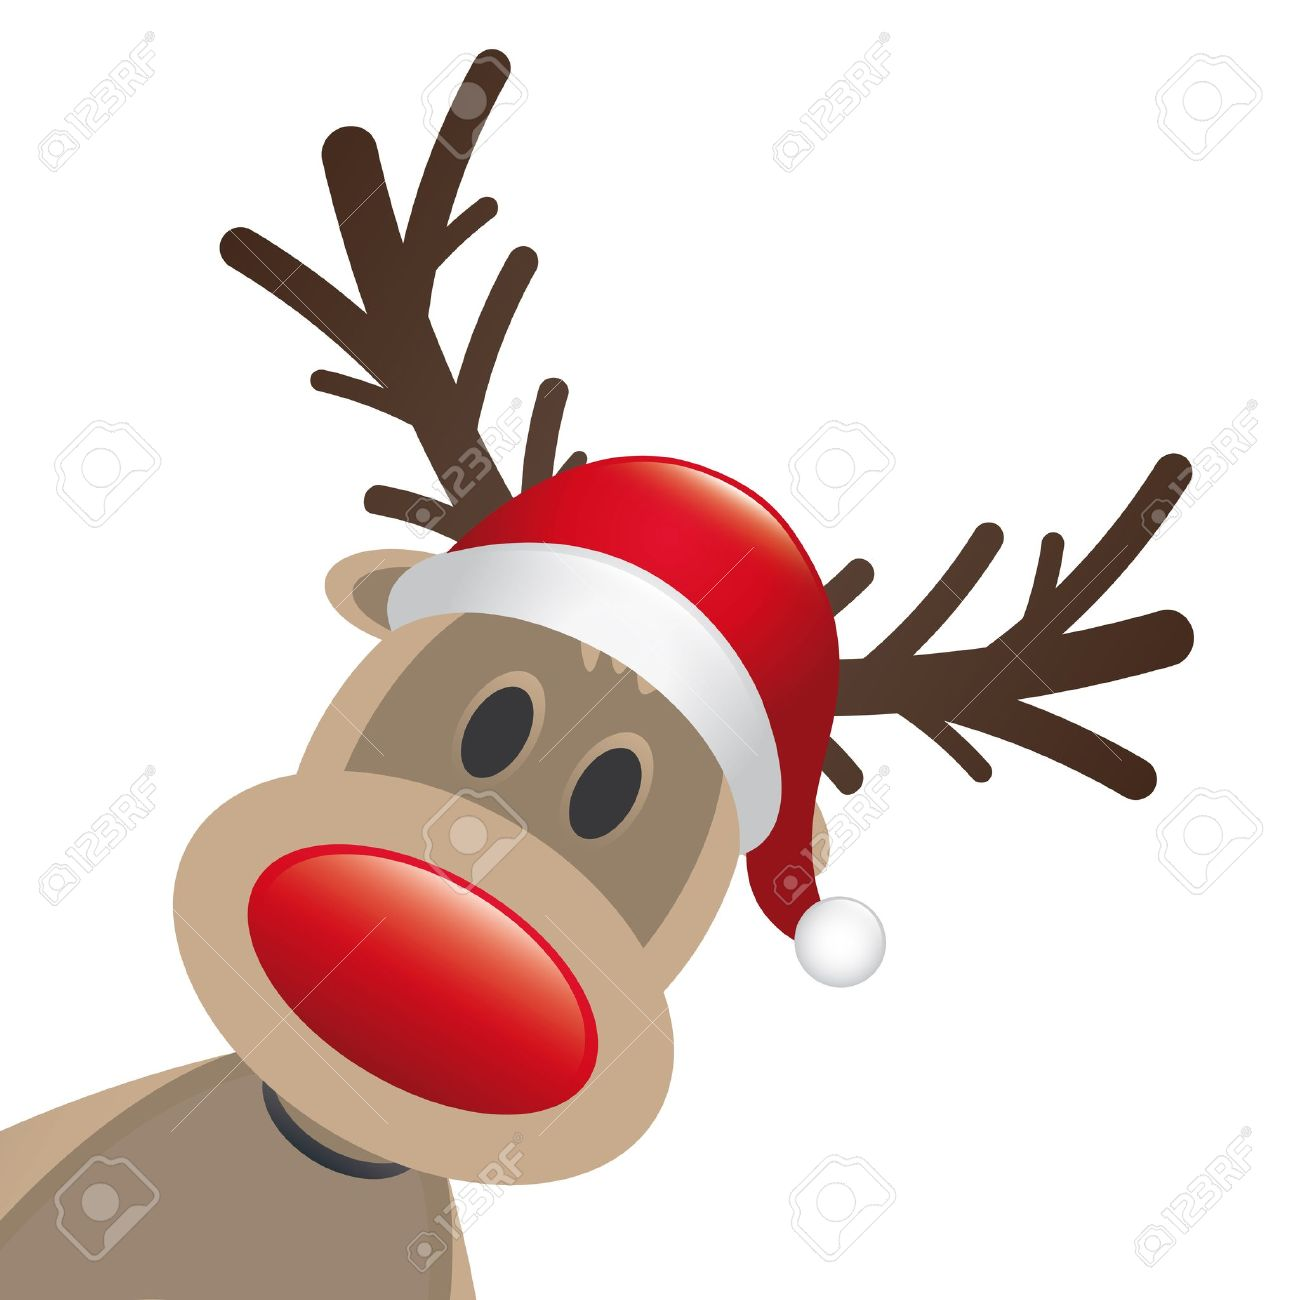 rudolph reindeer red nose santa claus hat stock photo picture and